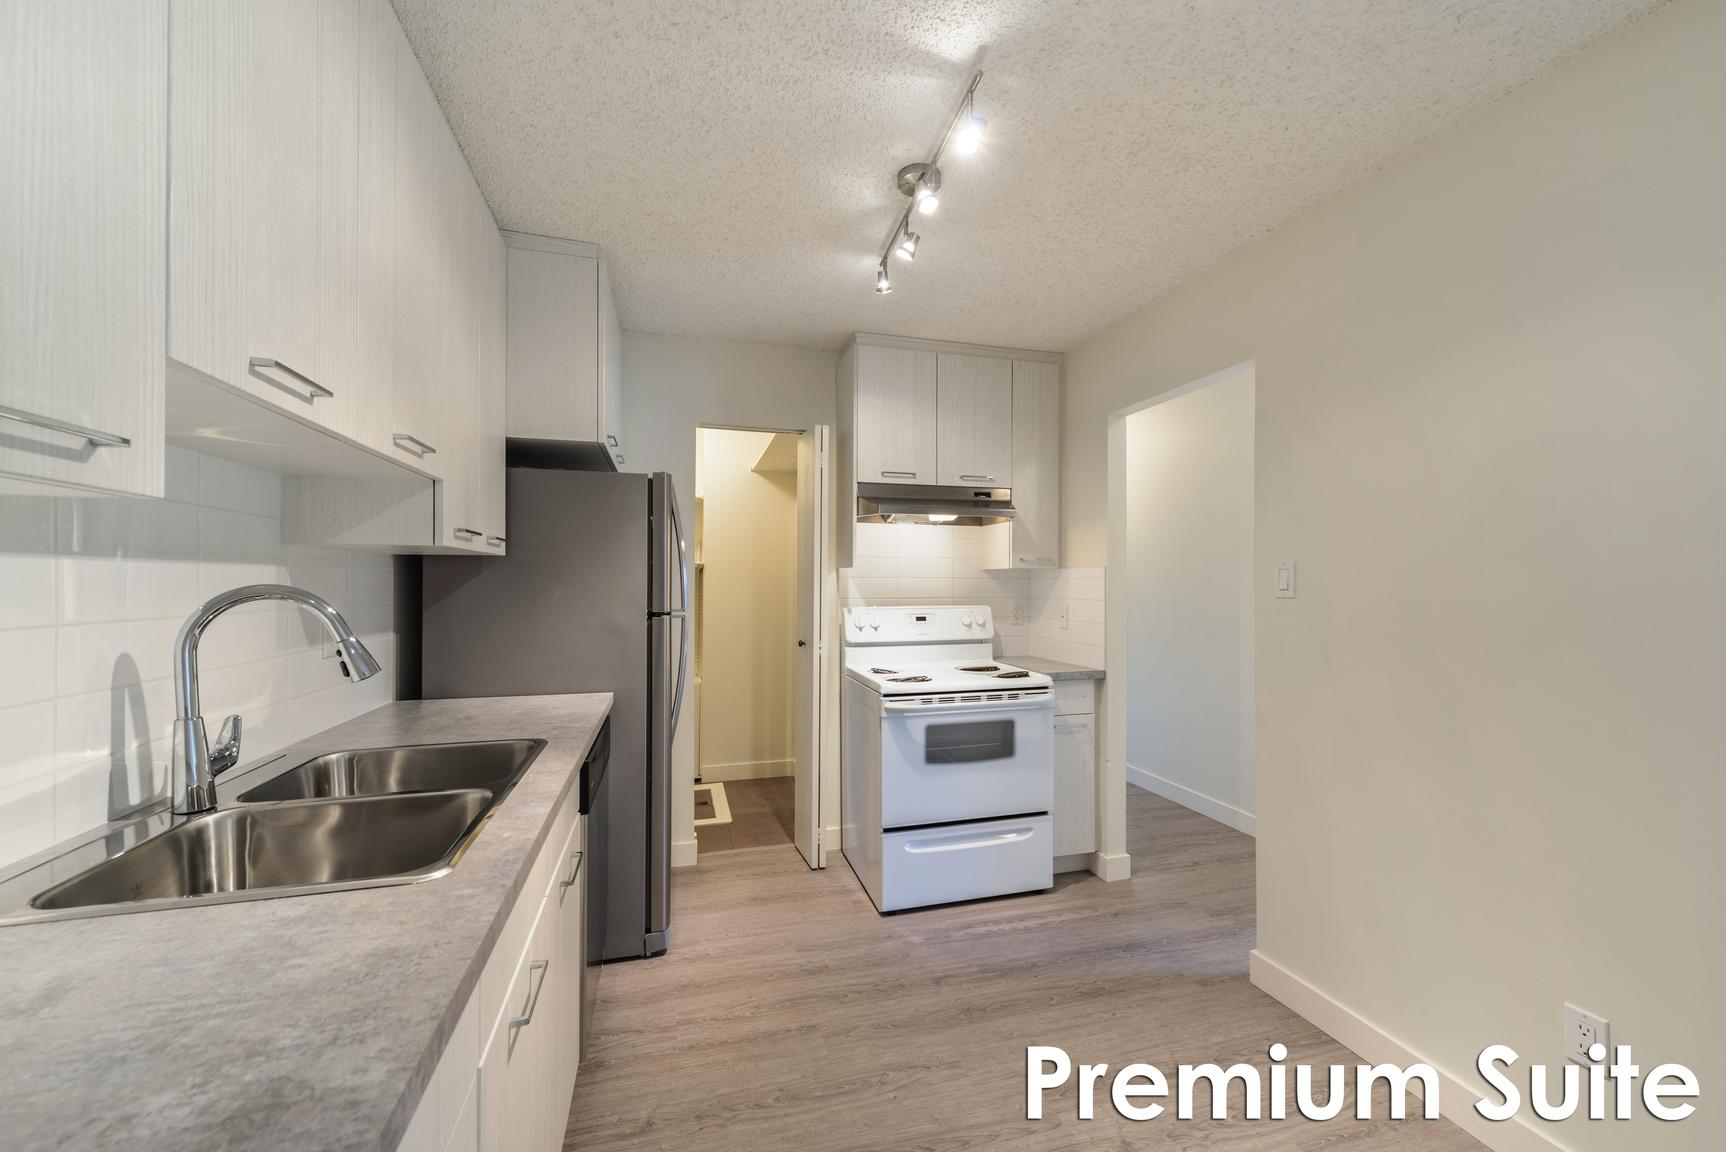 : 2803-79 St., 1BR Apartments photo #1